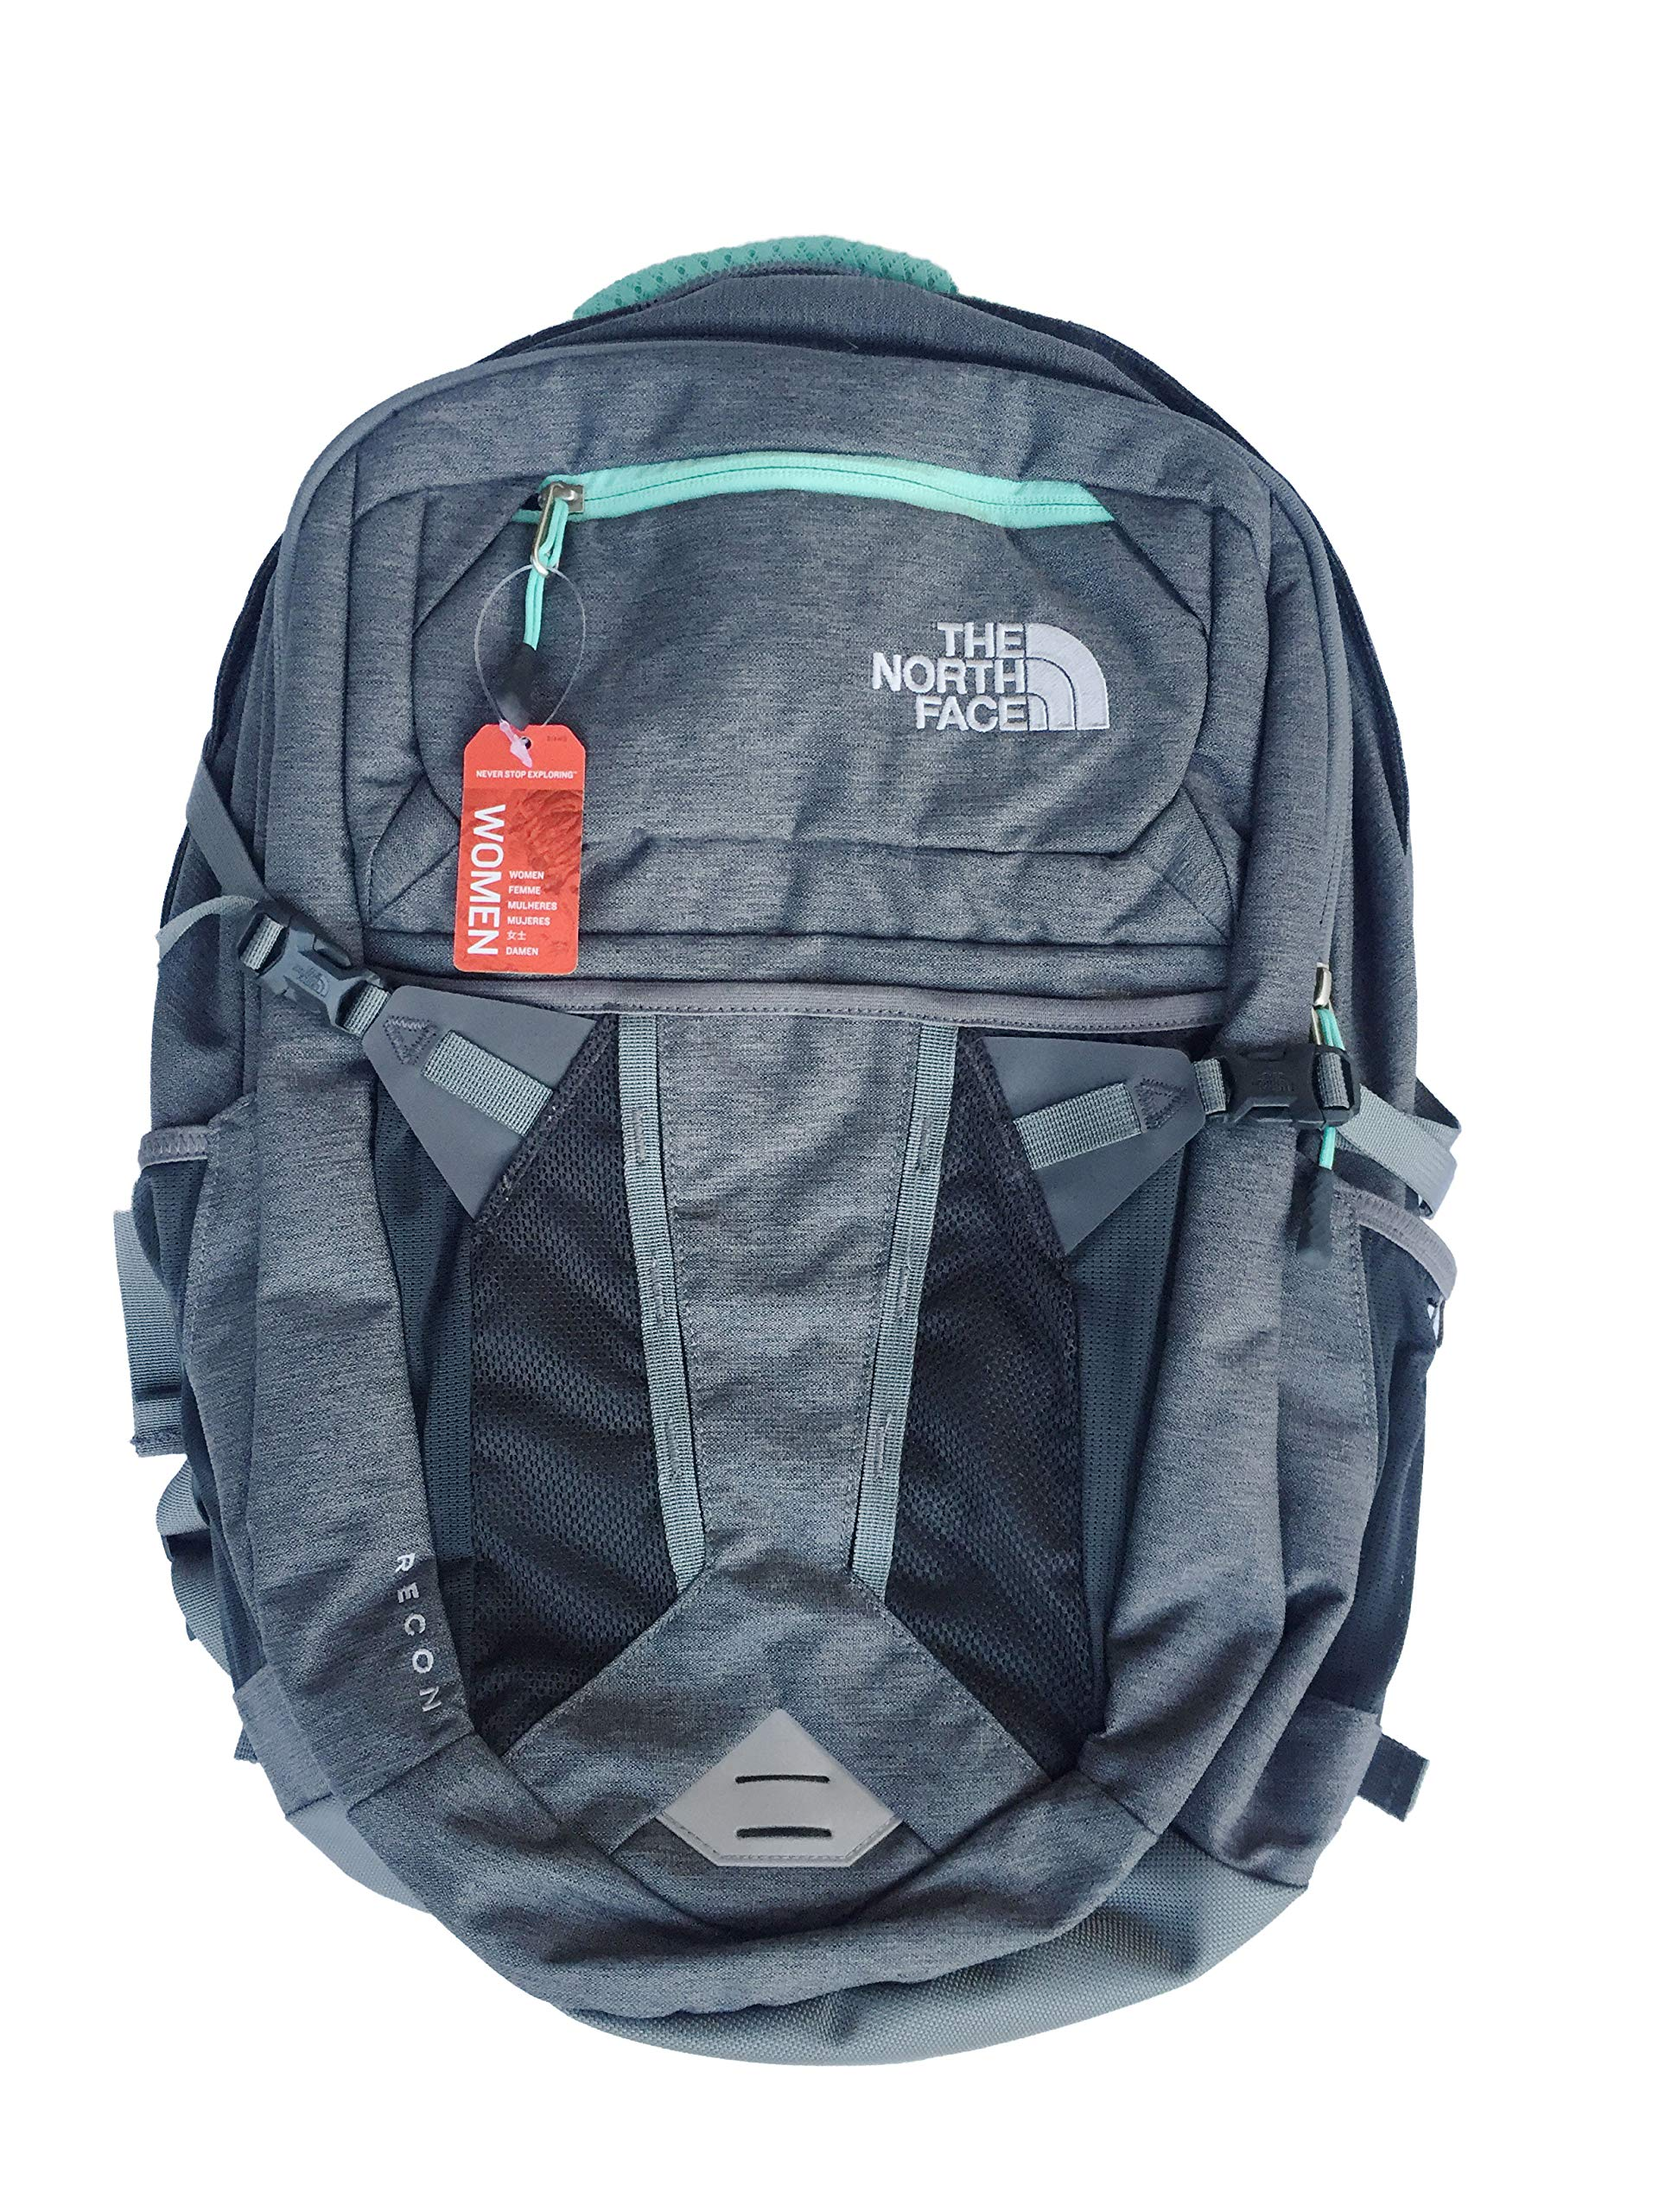 The North Face Recon Backpack Grey Mint